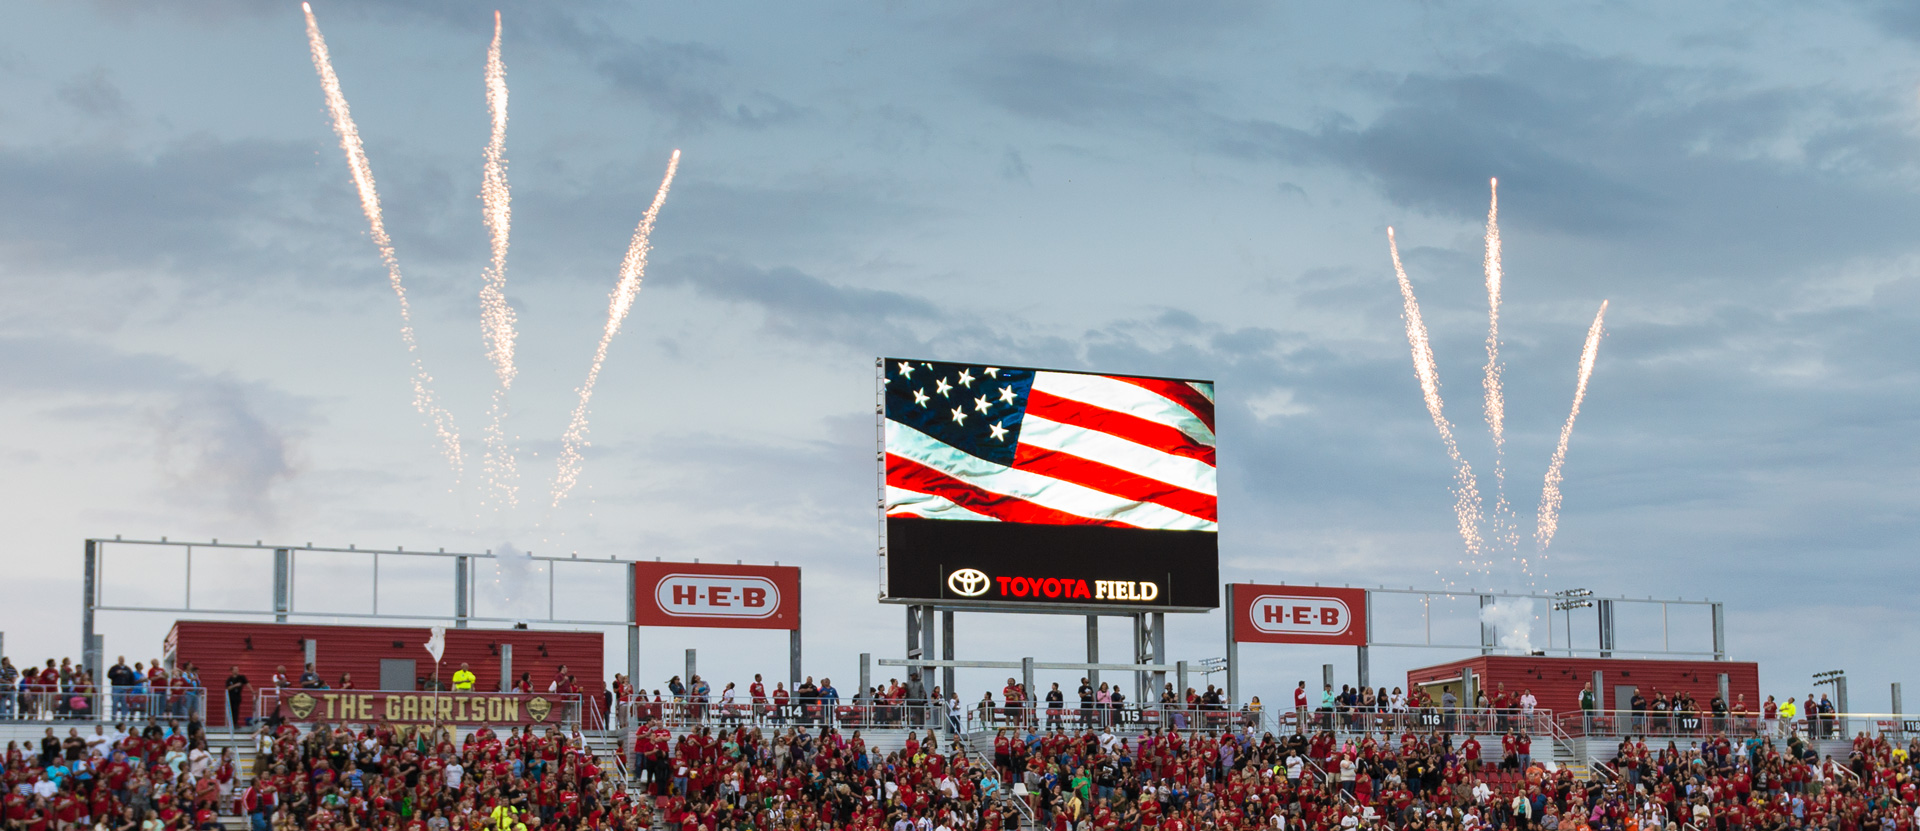 Toyota Field Big Screen